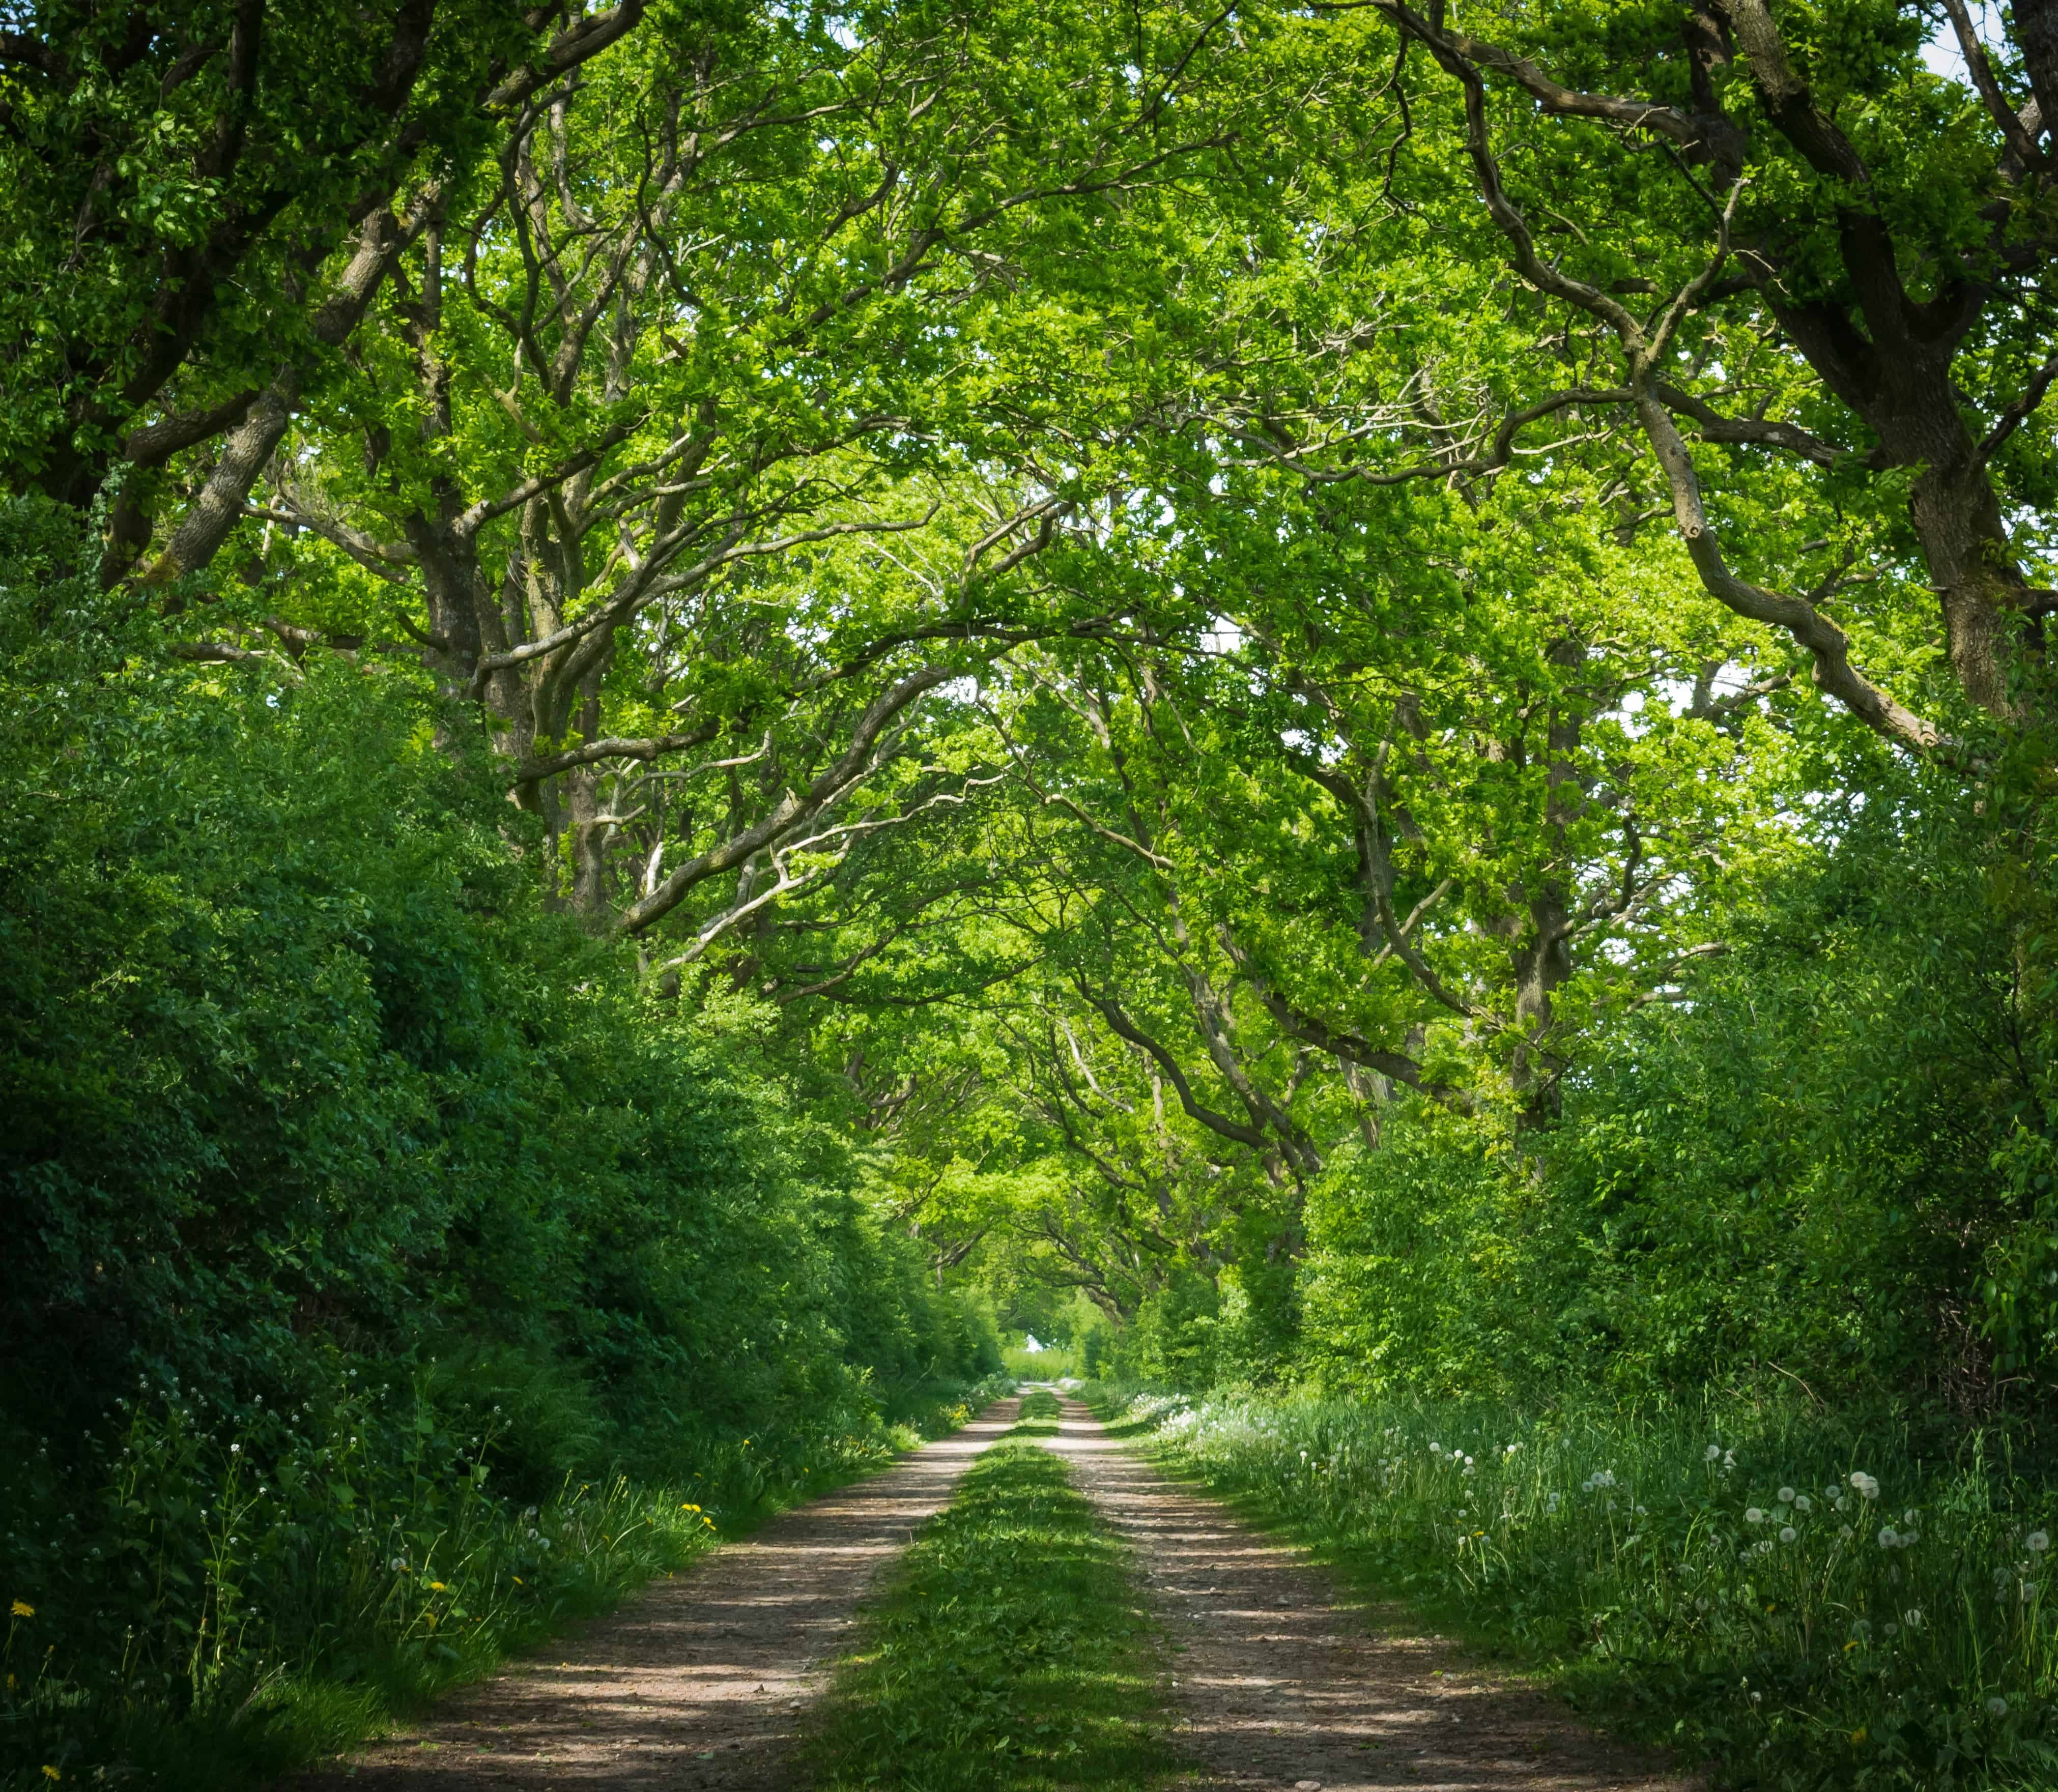 Free Picture: Road, Tree, Nature, Wood, Landscape